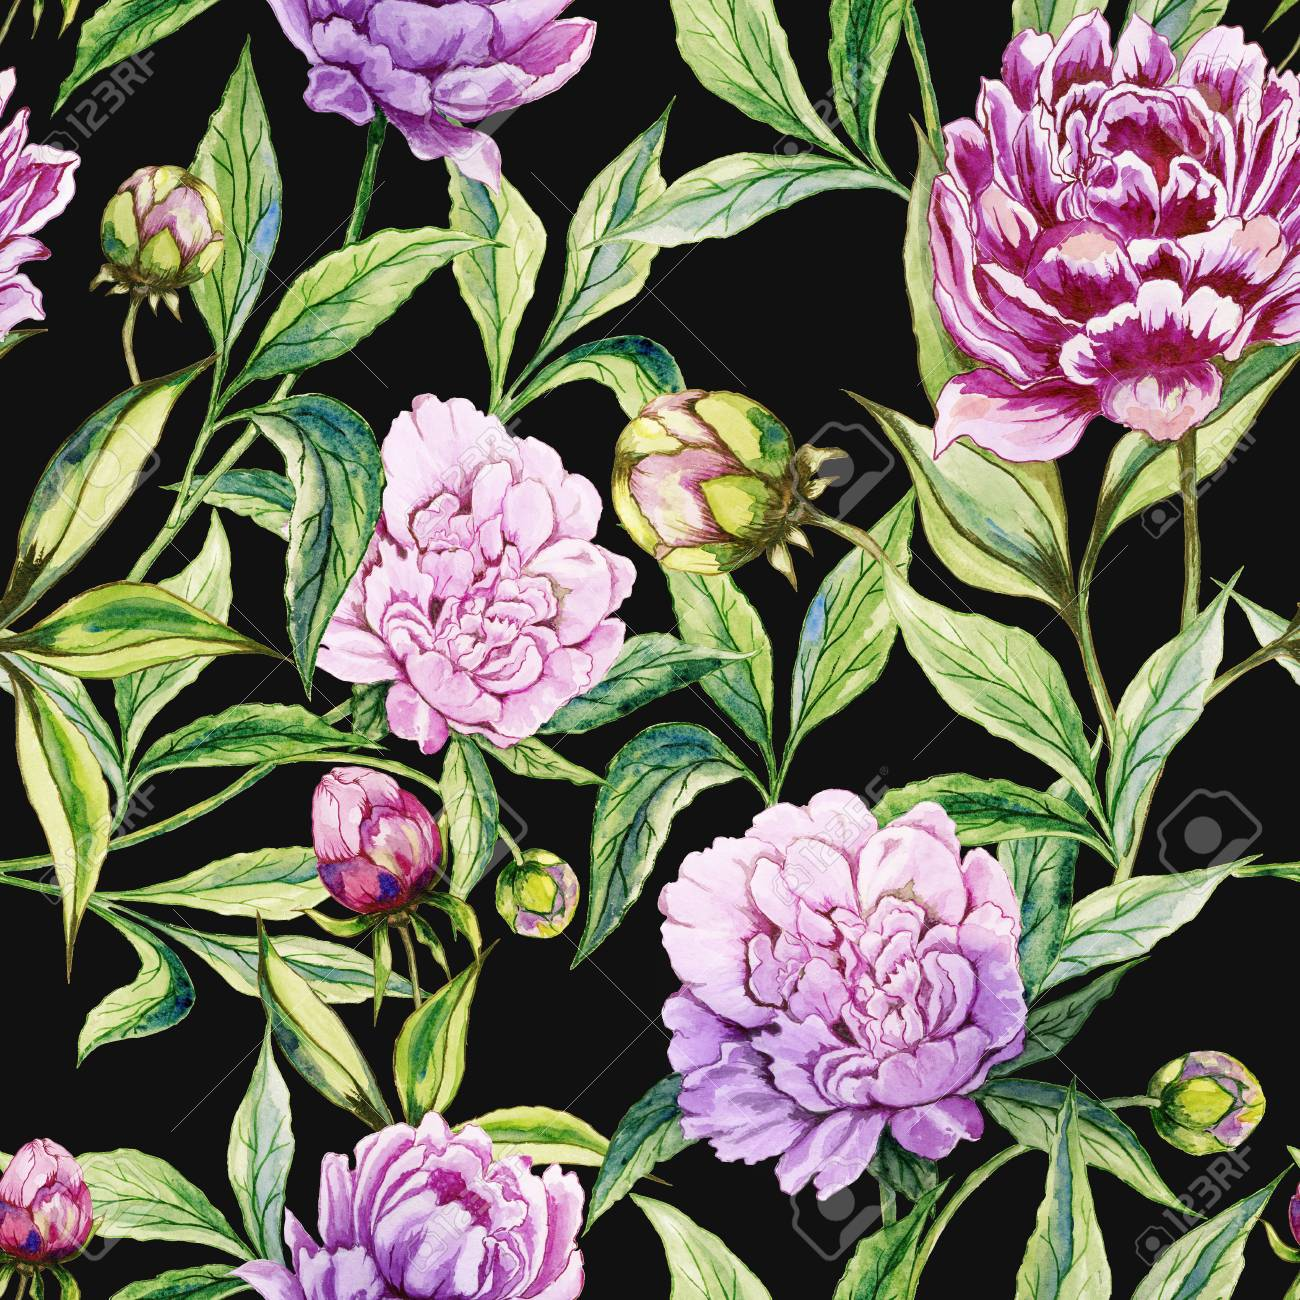 Beautiful Purple Peony Flowers With Green Leaves On Black Background Stock Photo Picture And Royalty Free Image Image 97830896